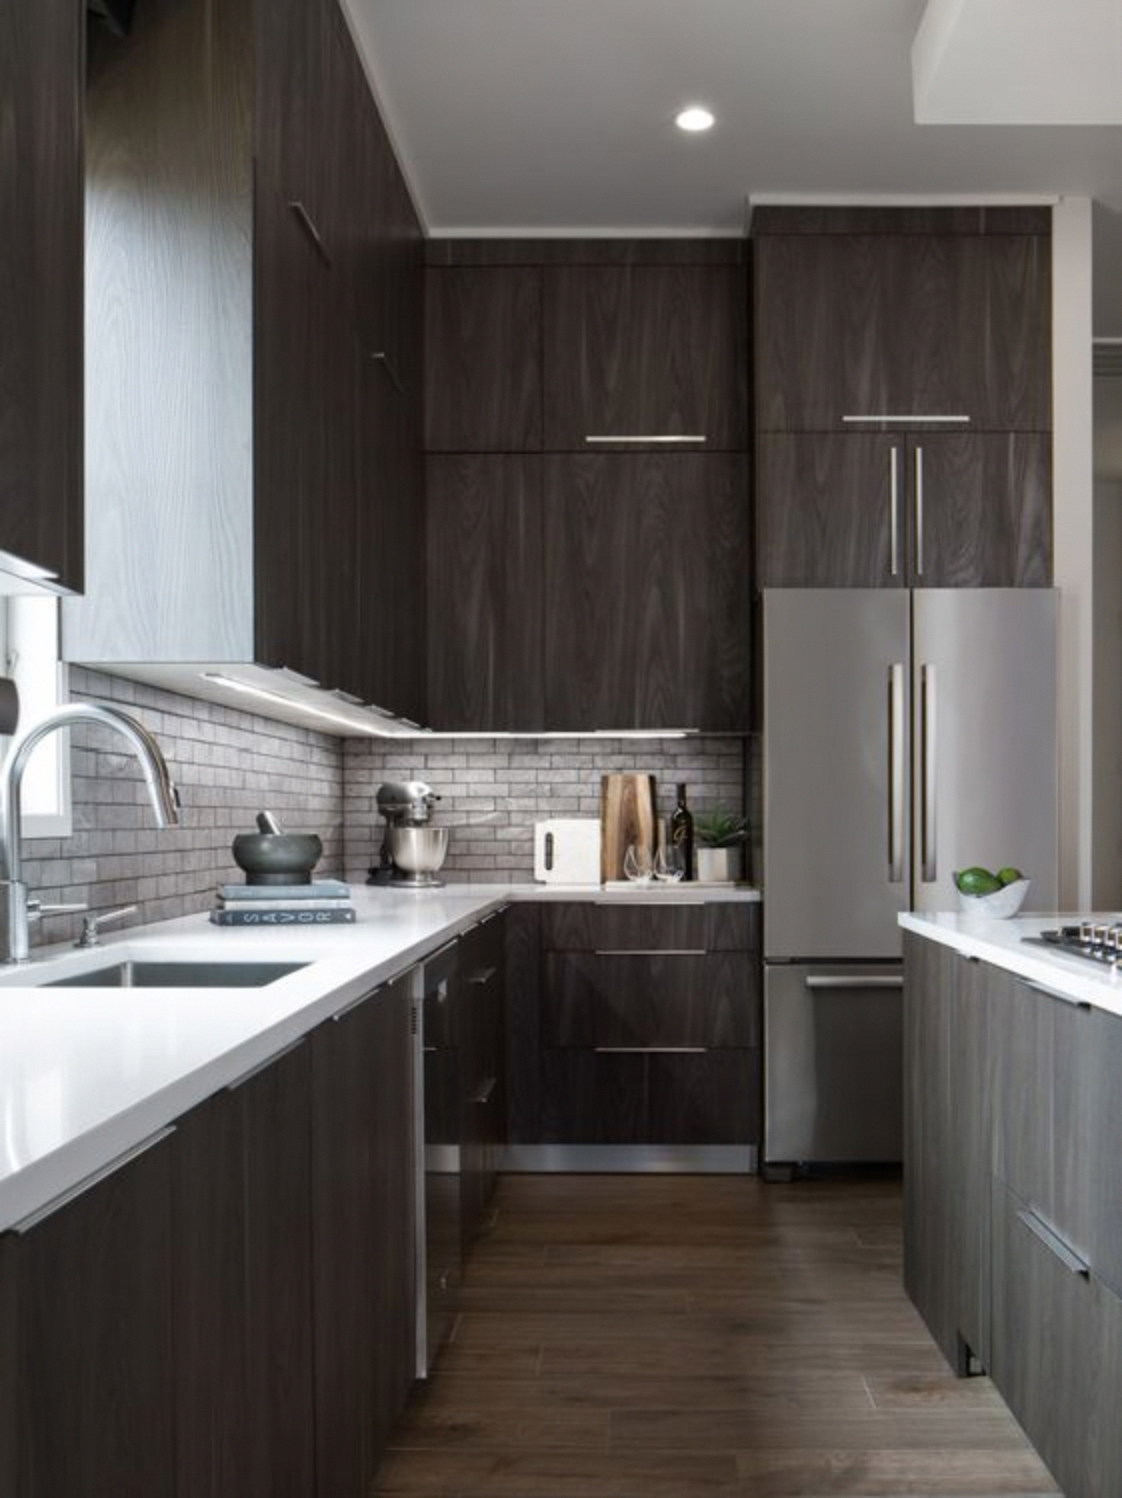 our kitchen remodeling tips will help you create the cook space you